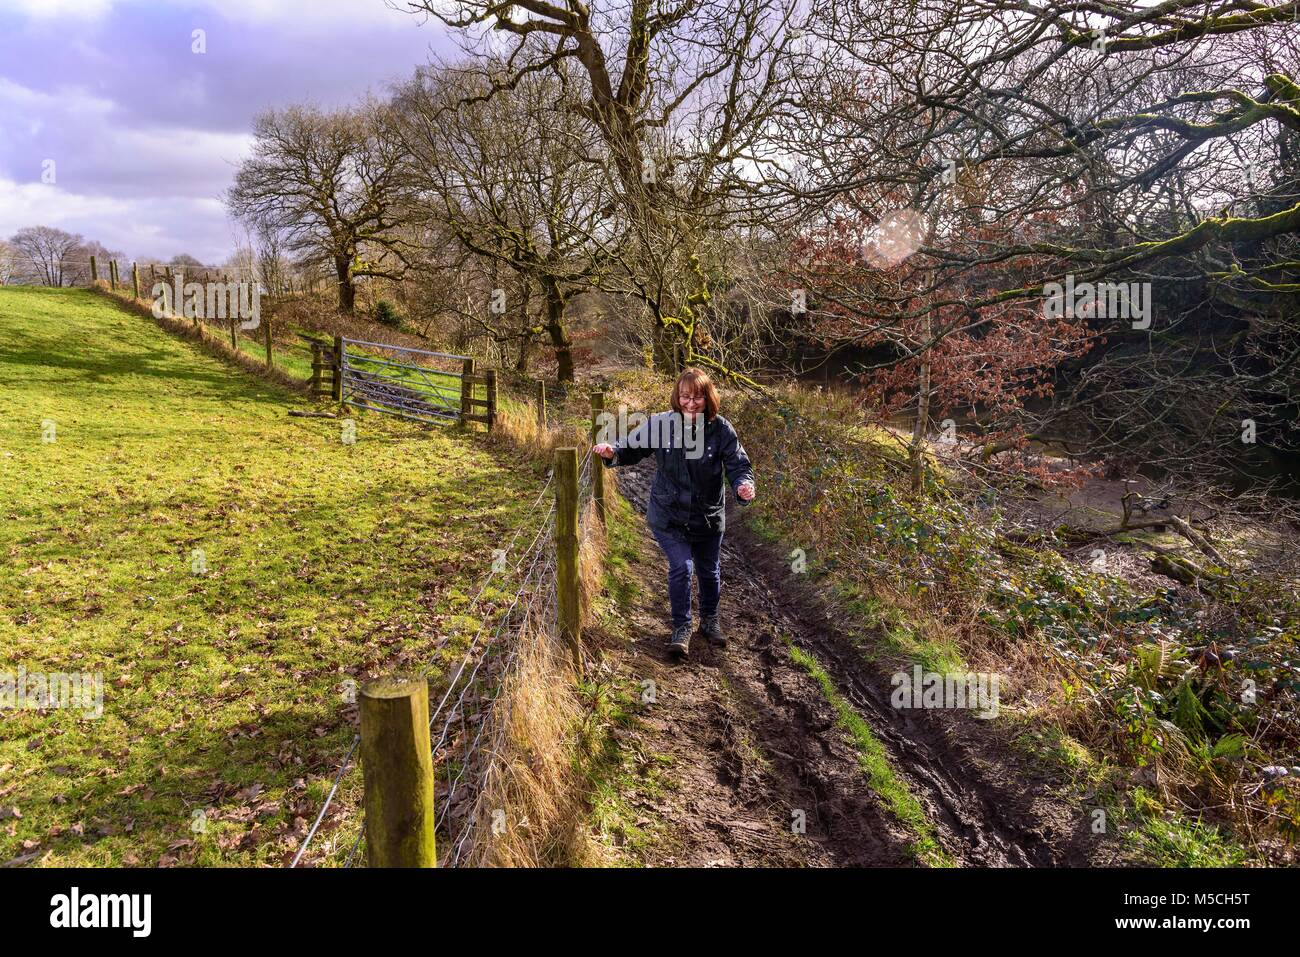 A woman walks a muddy country path - Stock Image